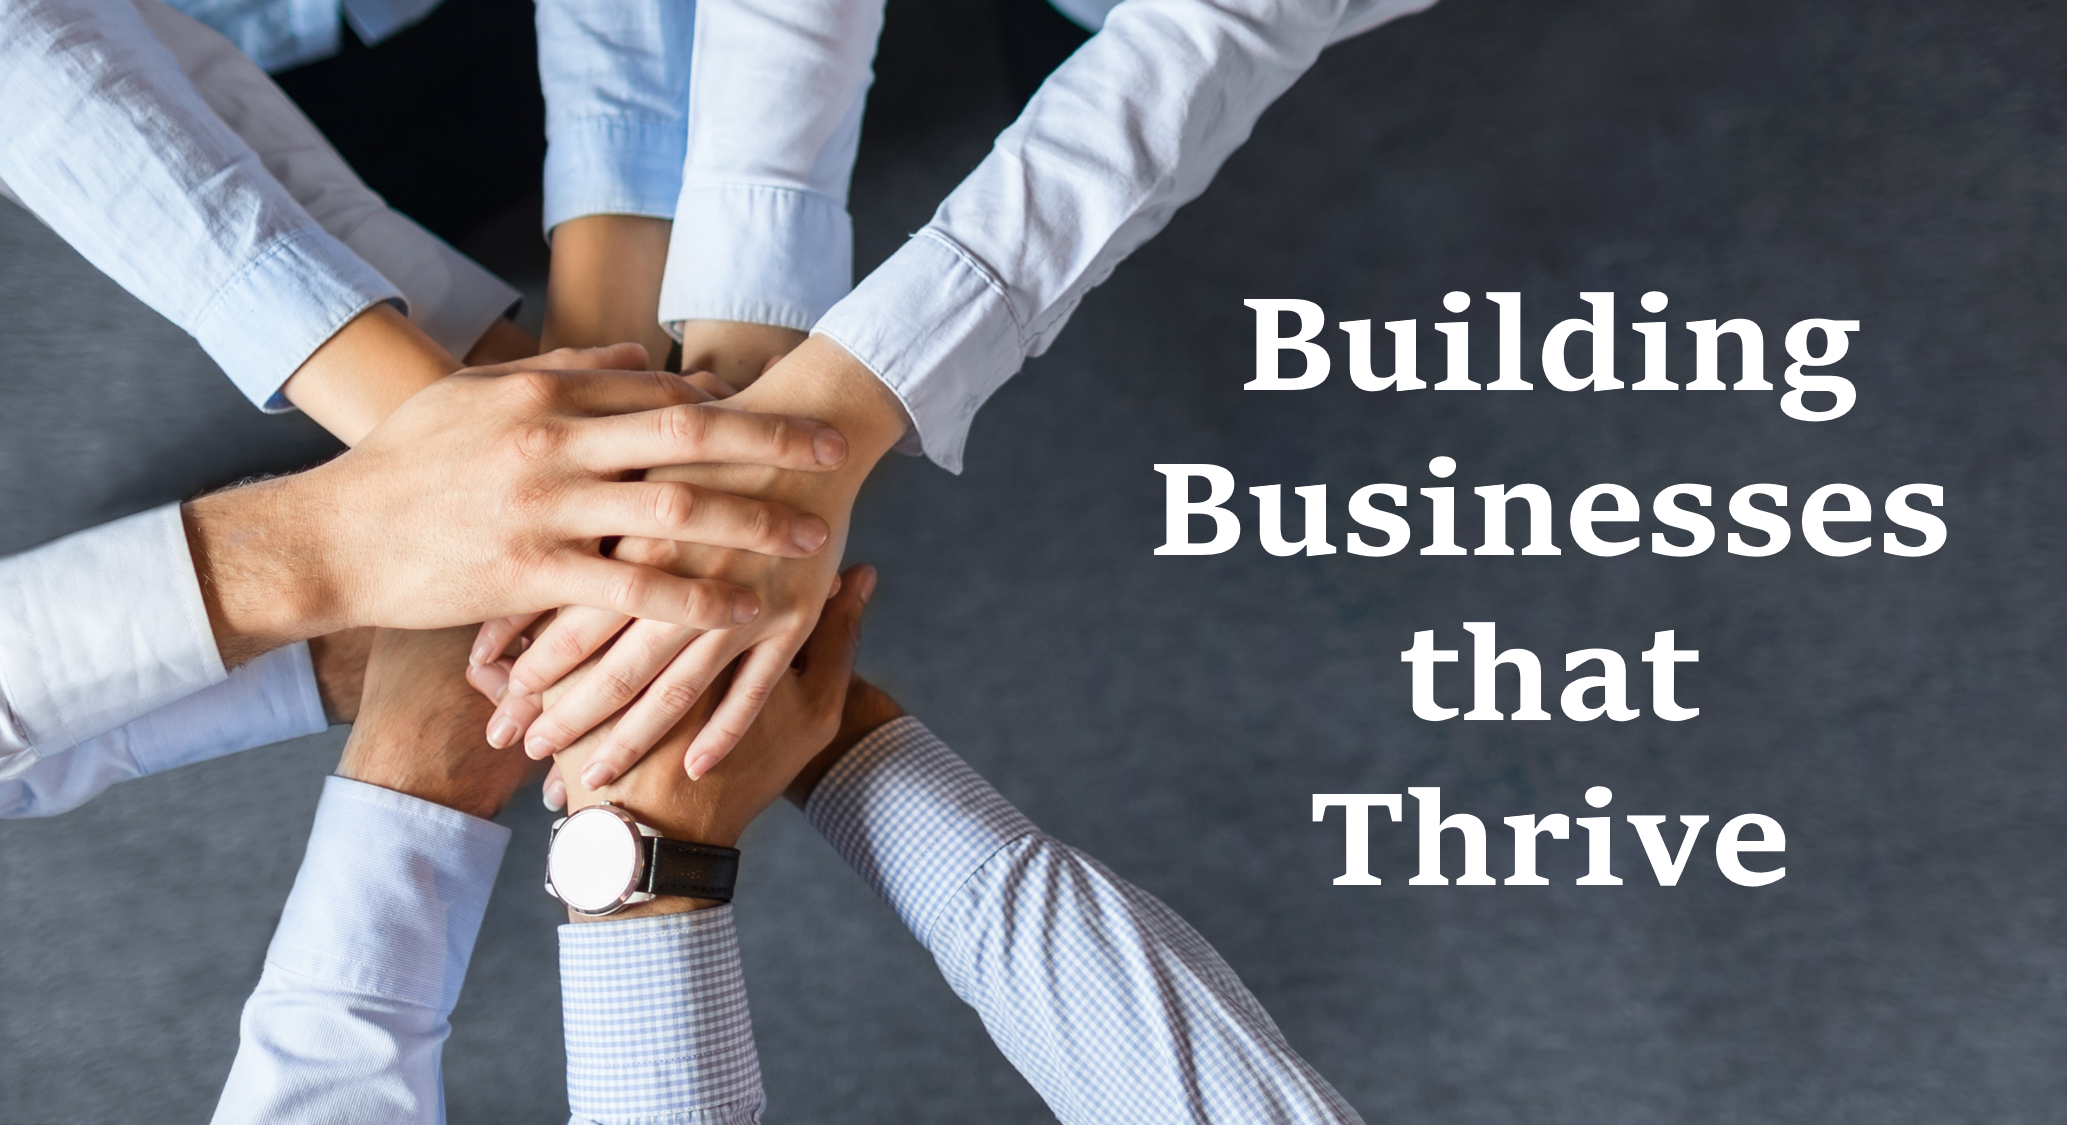 Building Businesses that Thrive